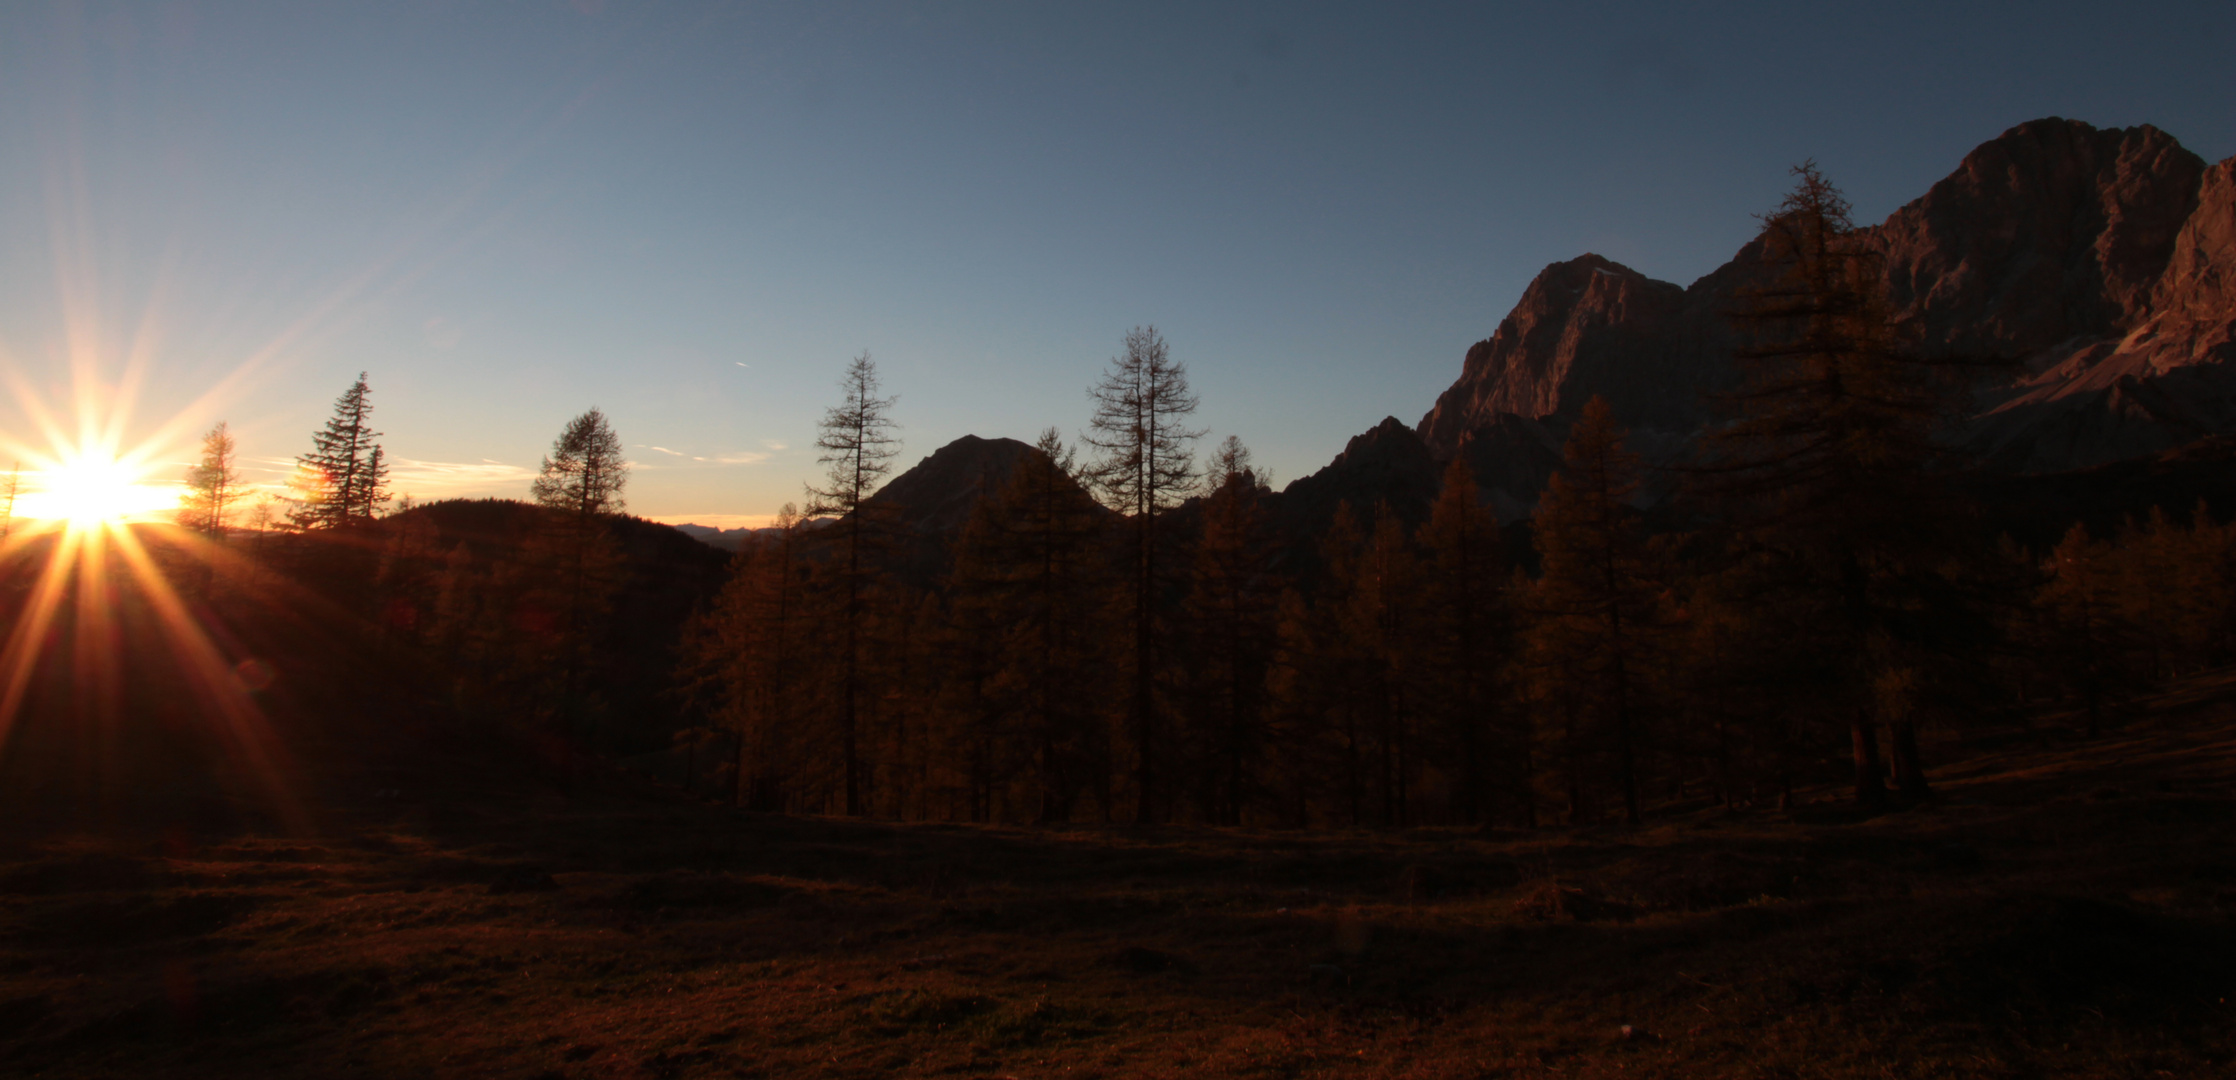 Sunset@Dachstein I